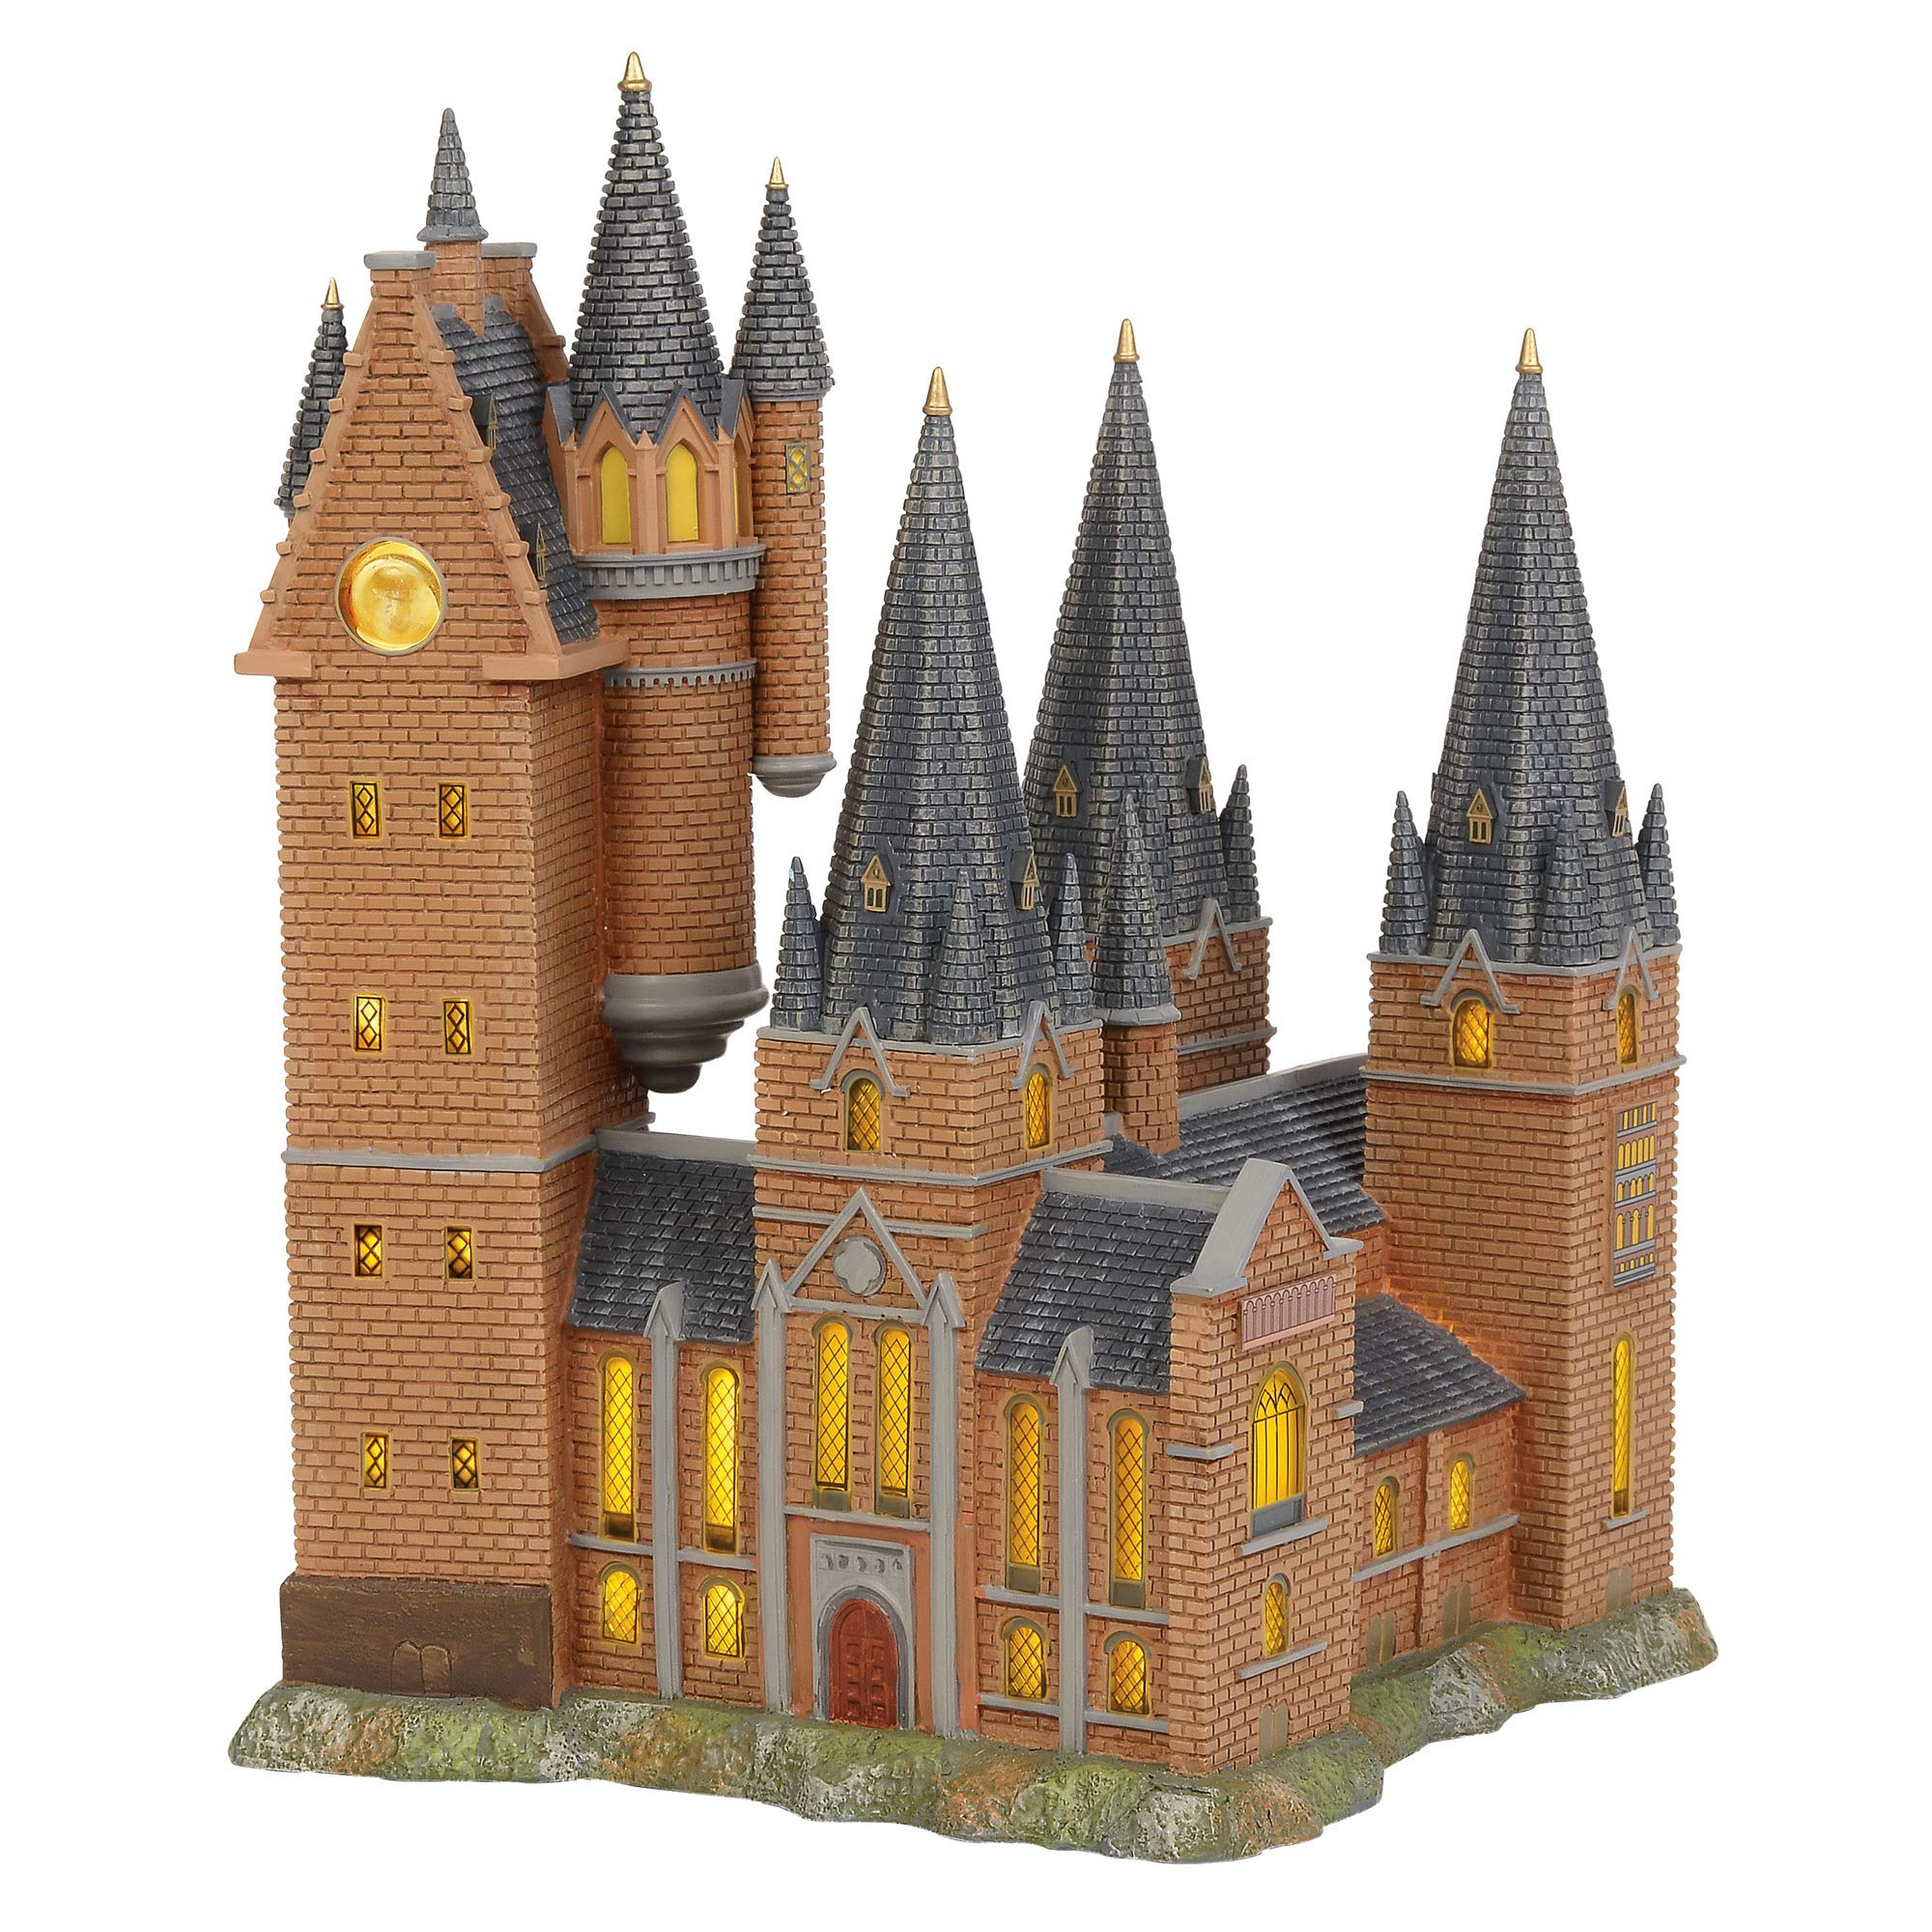 Department 56 Harry Potter Village Hogwarts Astronomy Tower Lighted Buildings, 12.2'' by Enesco